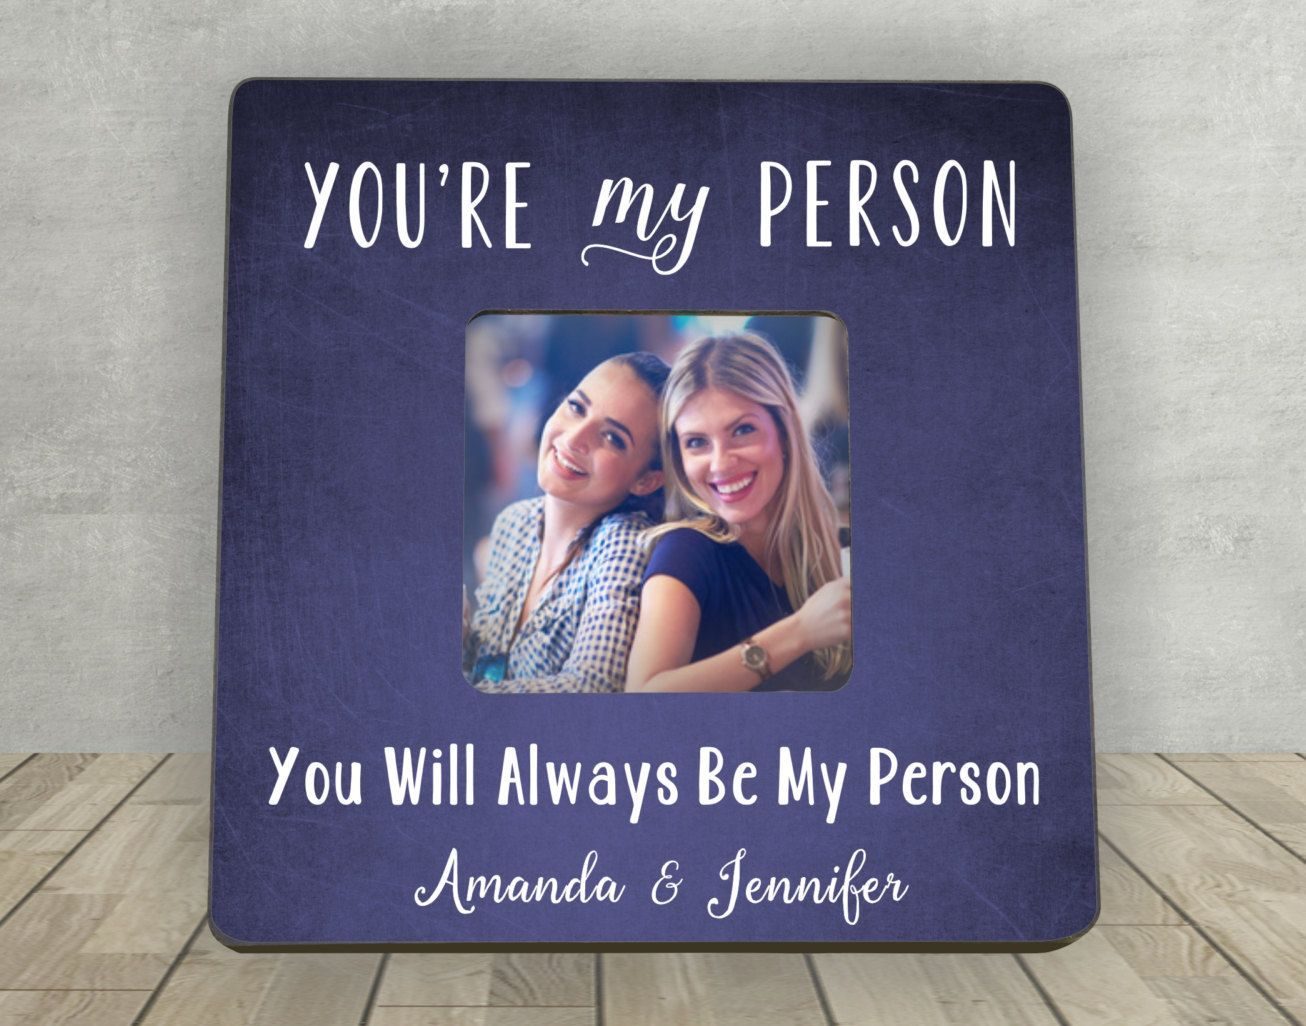 Best Friend Gift, Personalized Picture Frame, Christmas